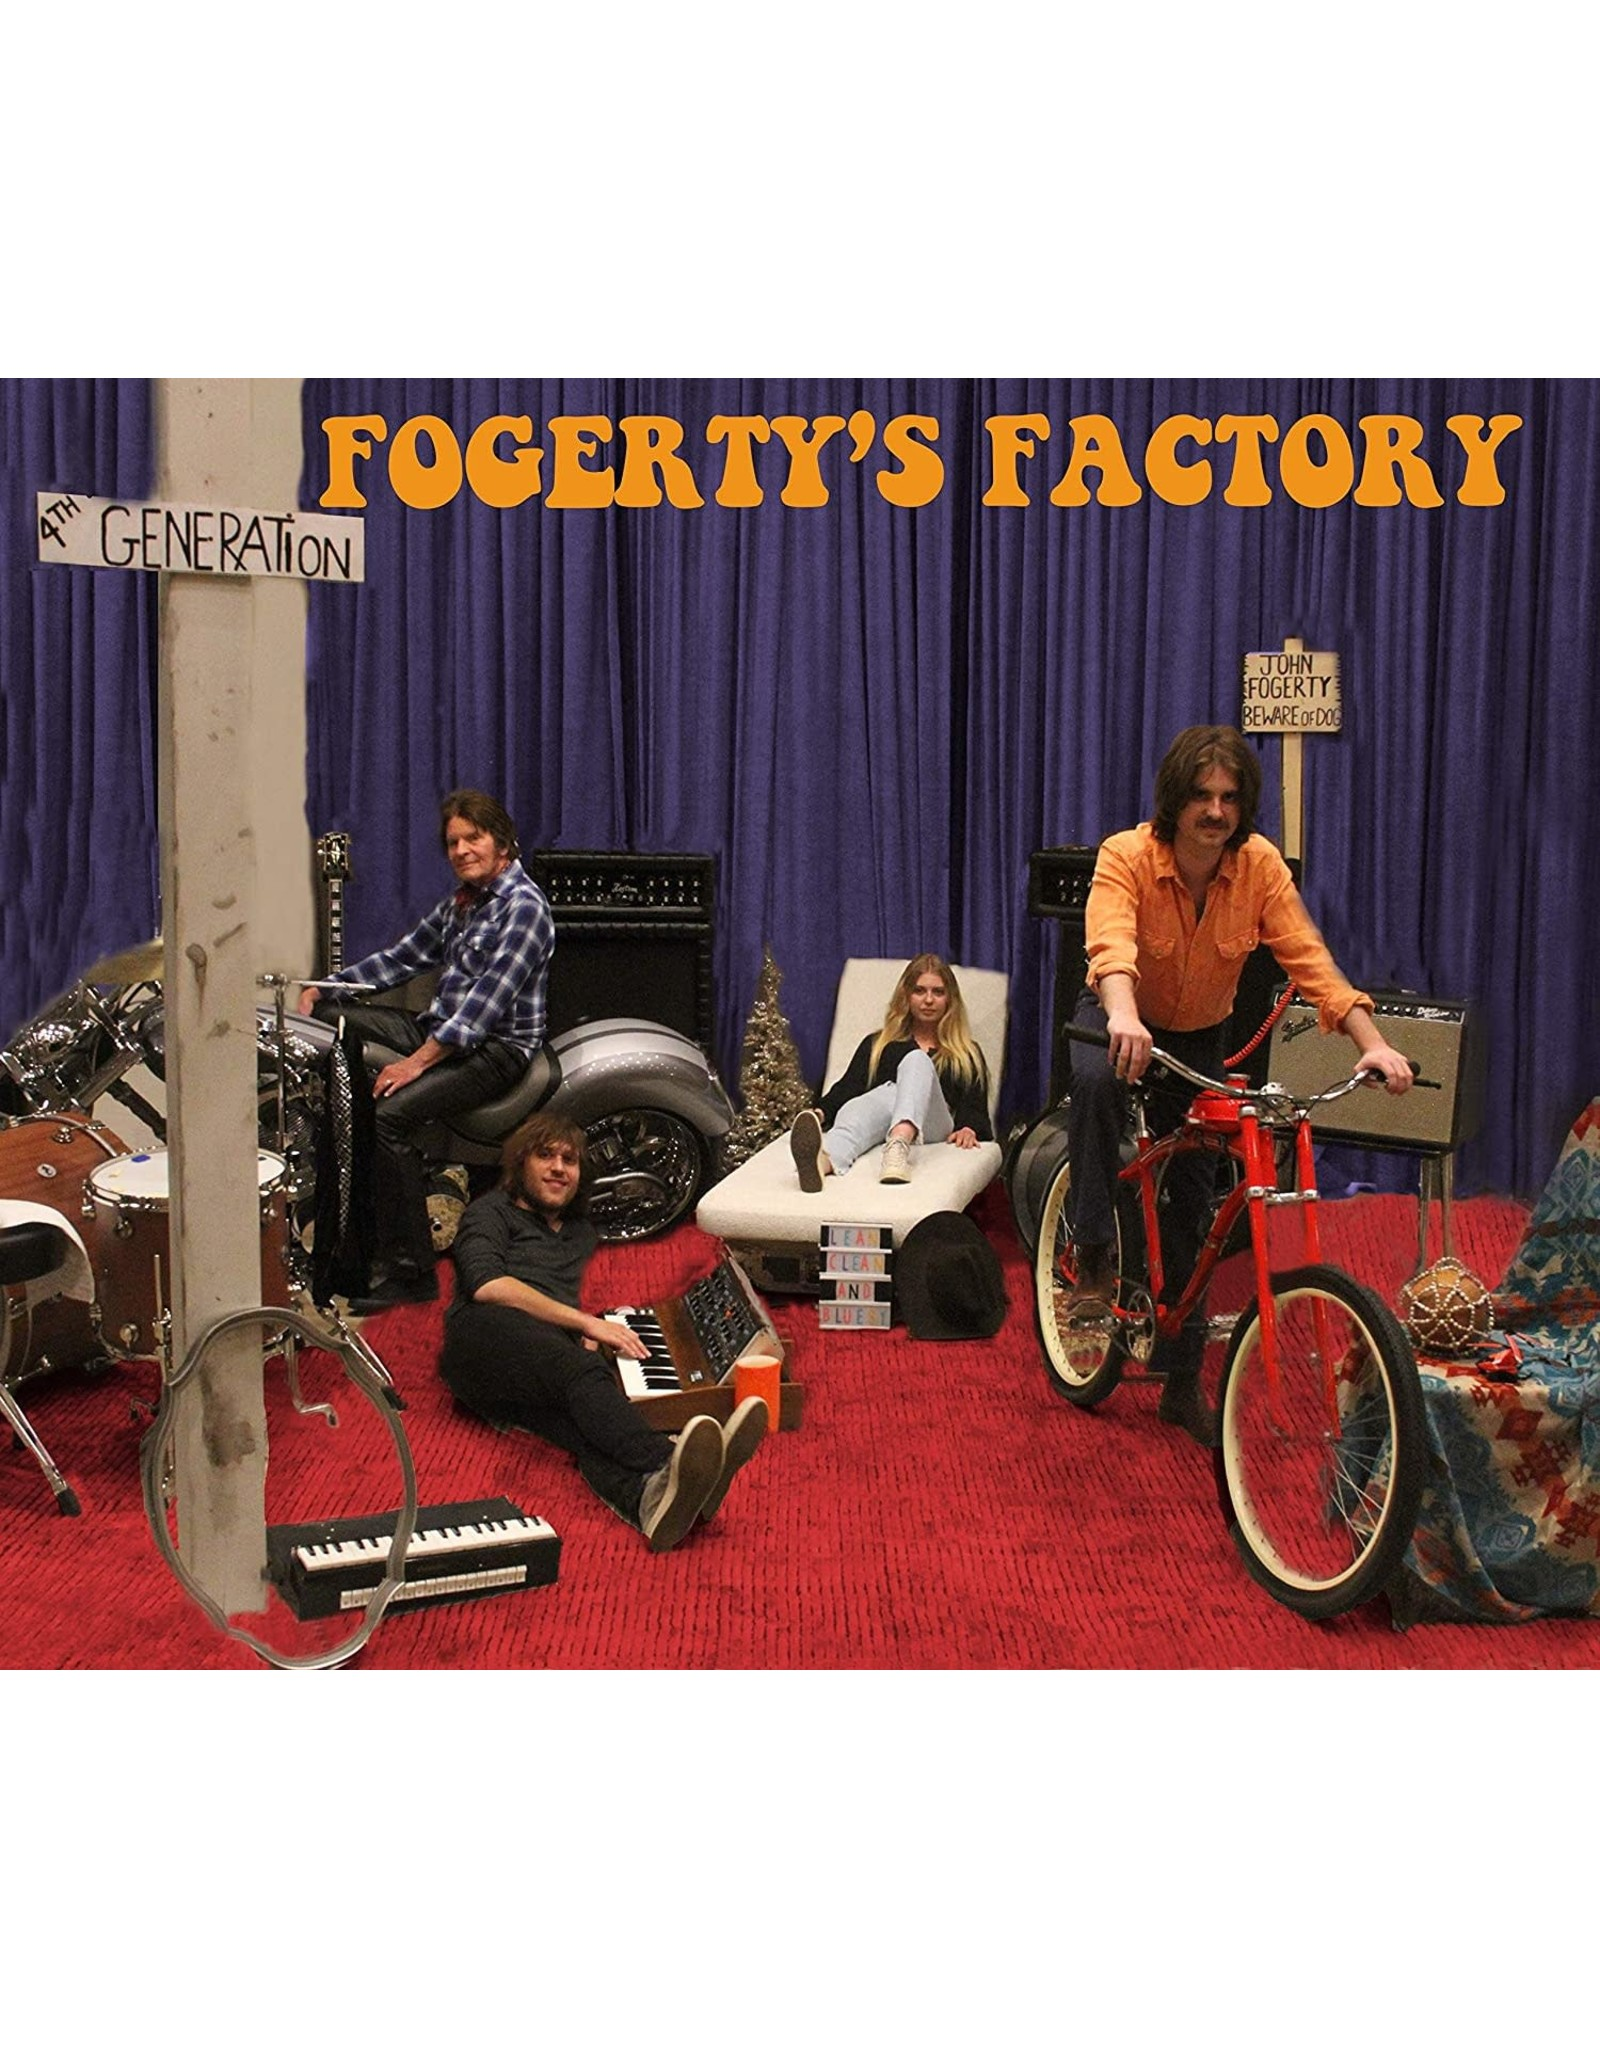 Fogerty, John - Fogerty's Factory LP